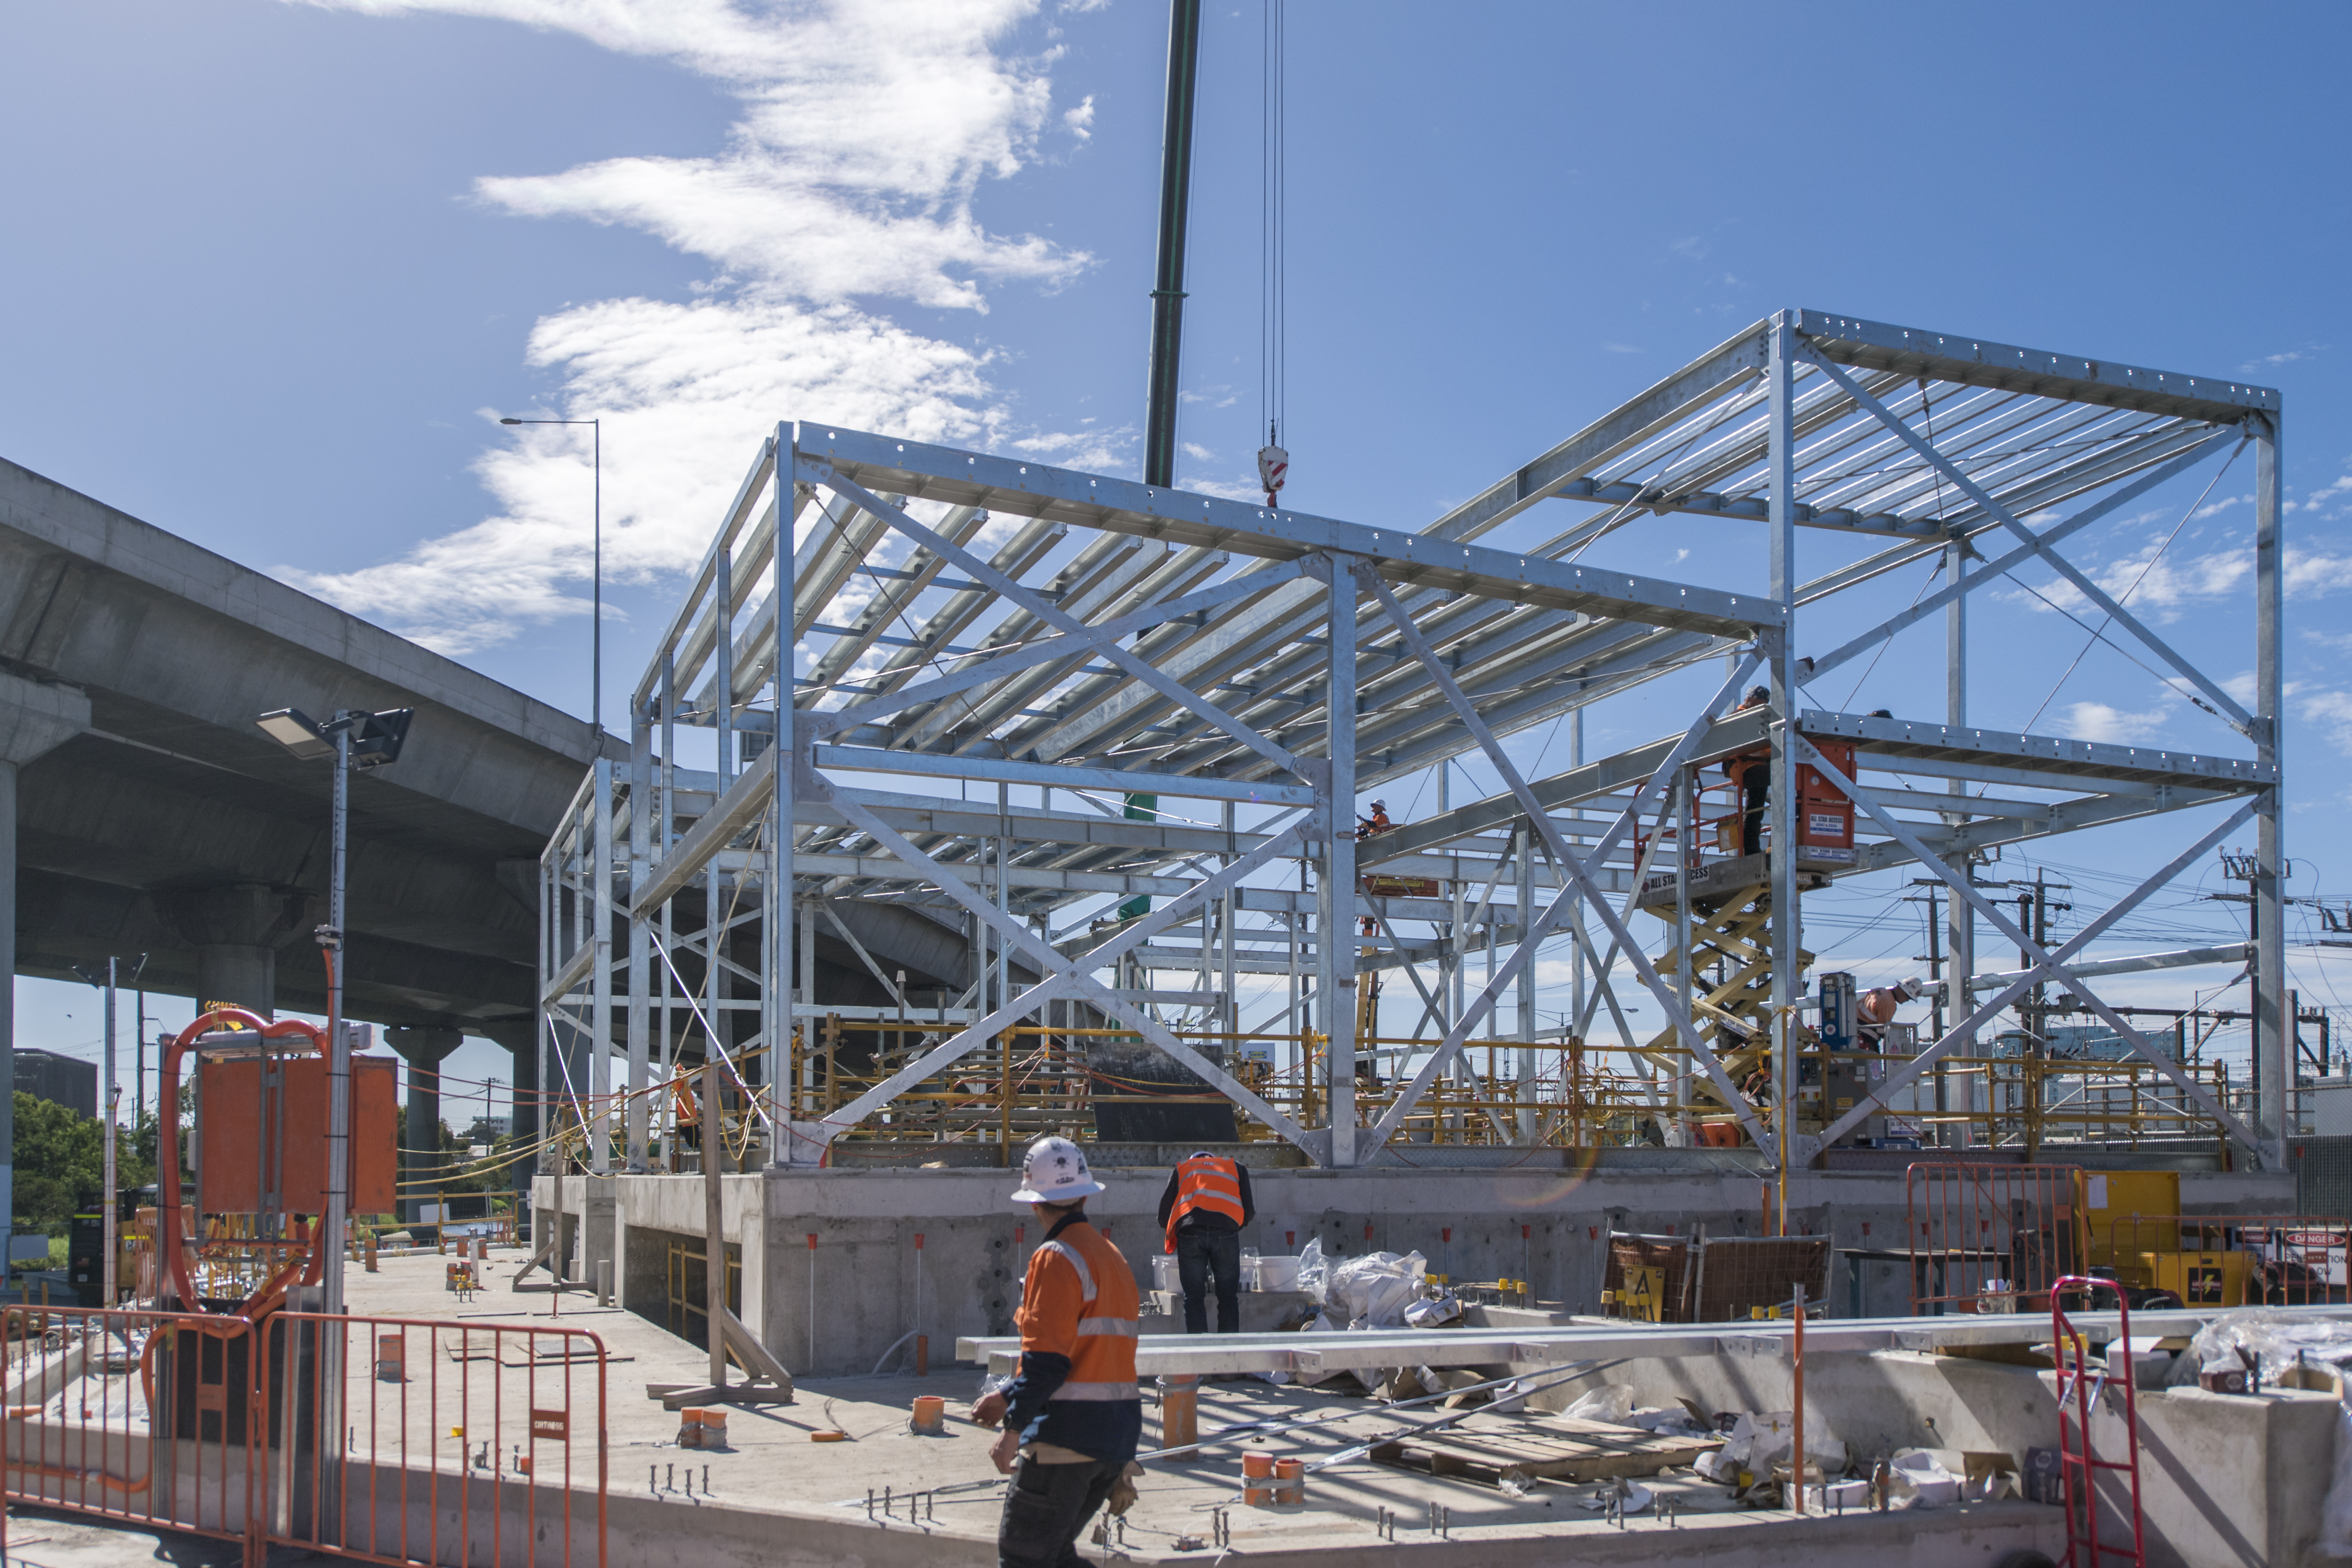 Workers building the framework of the North Melbourne electrical substation